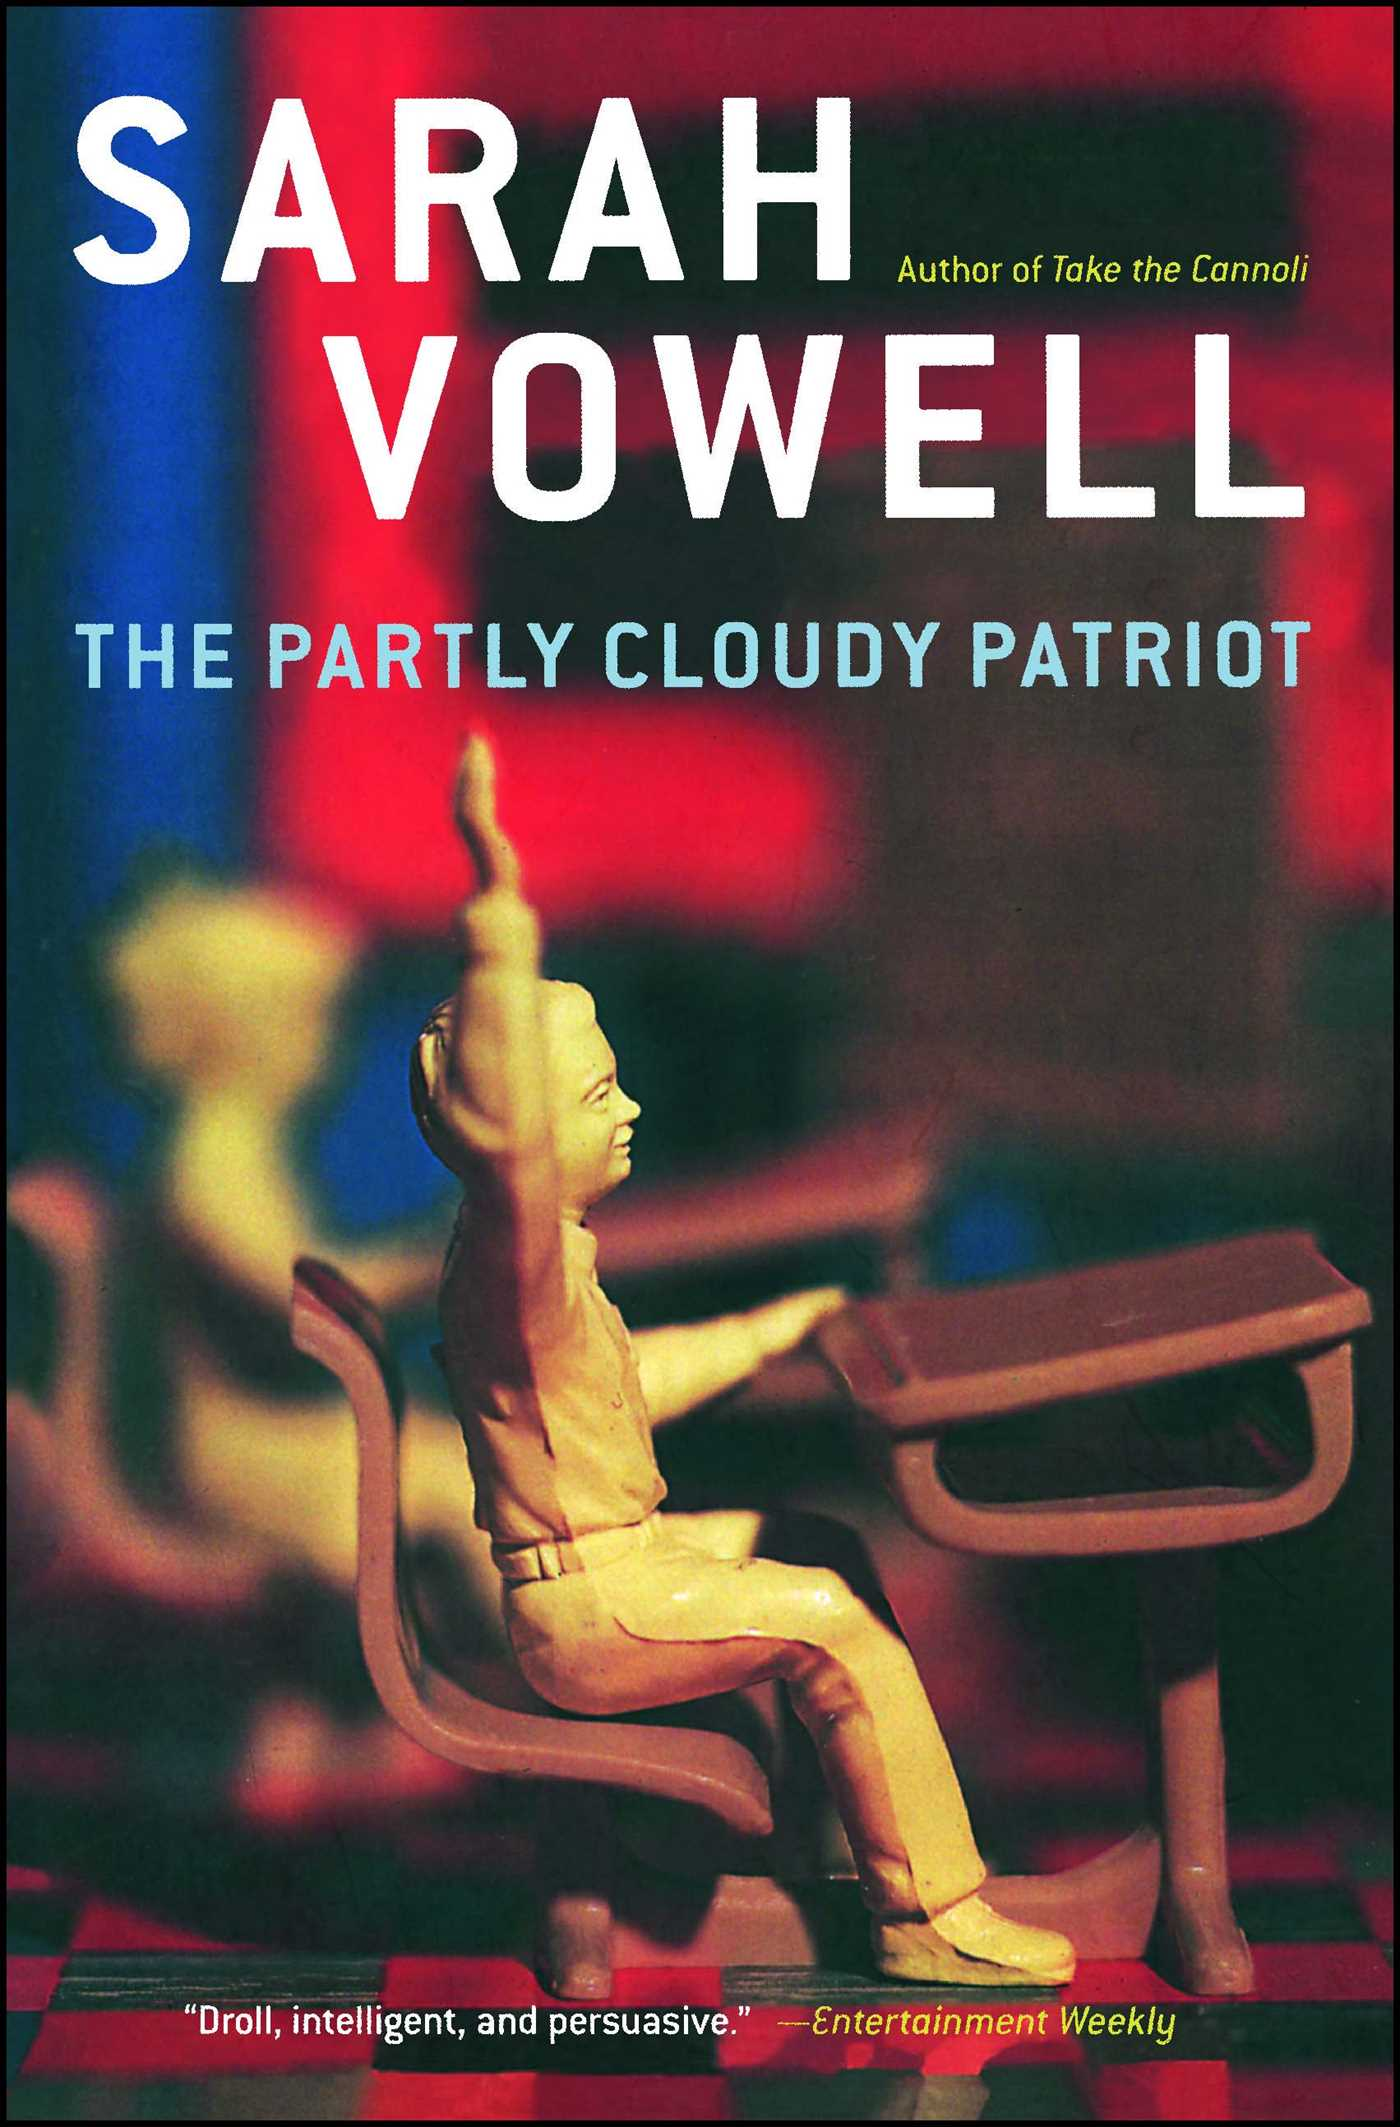 The partly cloudy patriot 9780743233361 hr